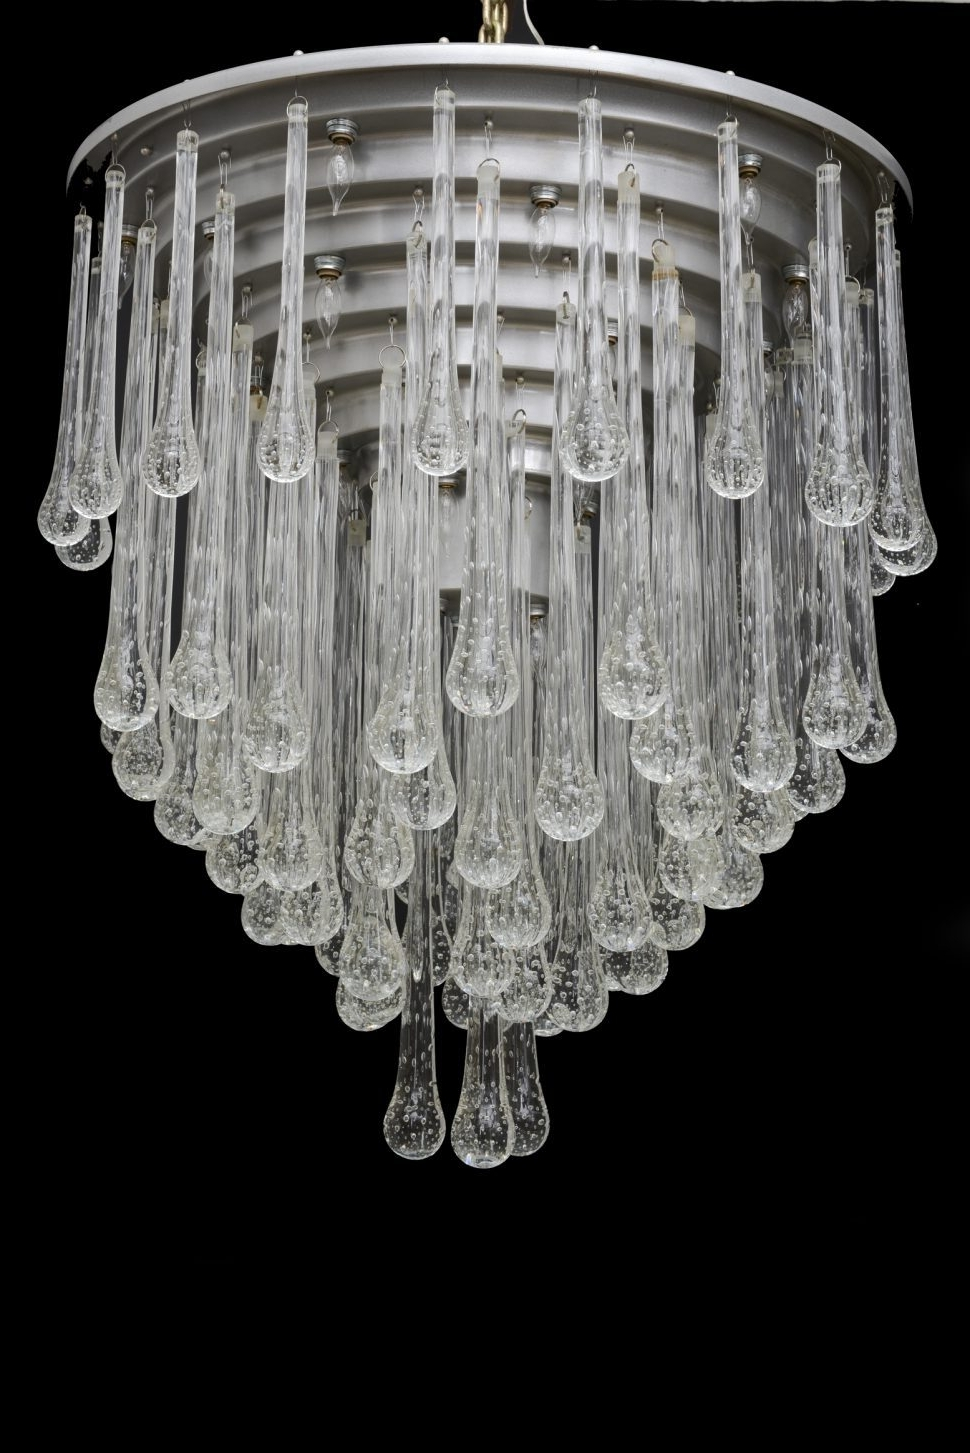 Well Known Chandeliers : Faux Crystal Chandelier Creative Lady Of The House Inside Faux Crystal Chandeliers (View 13 of 15)